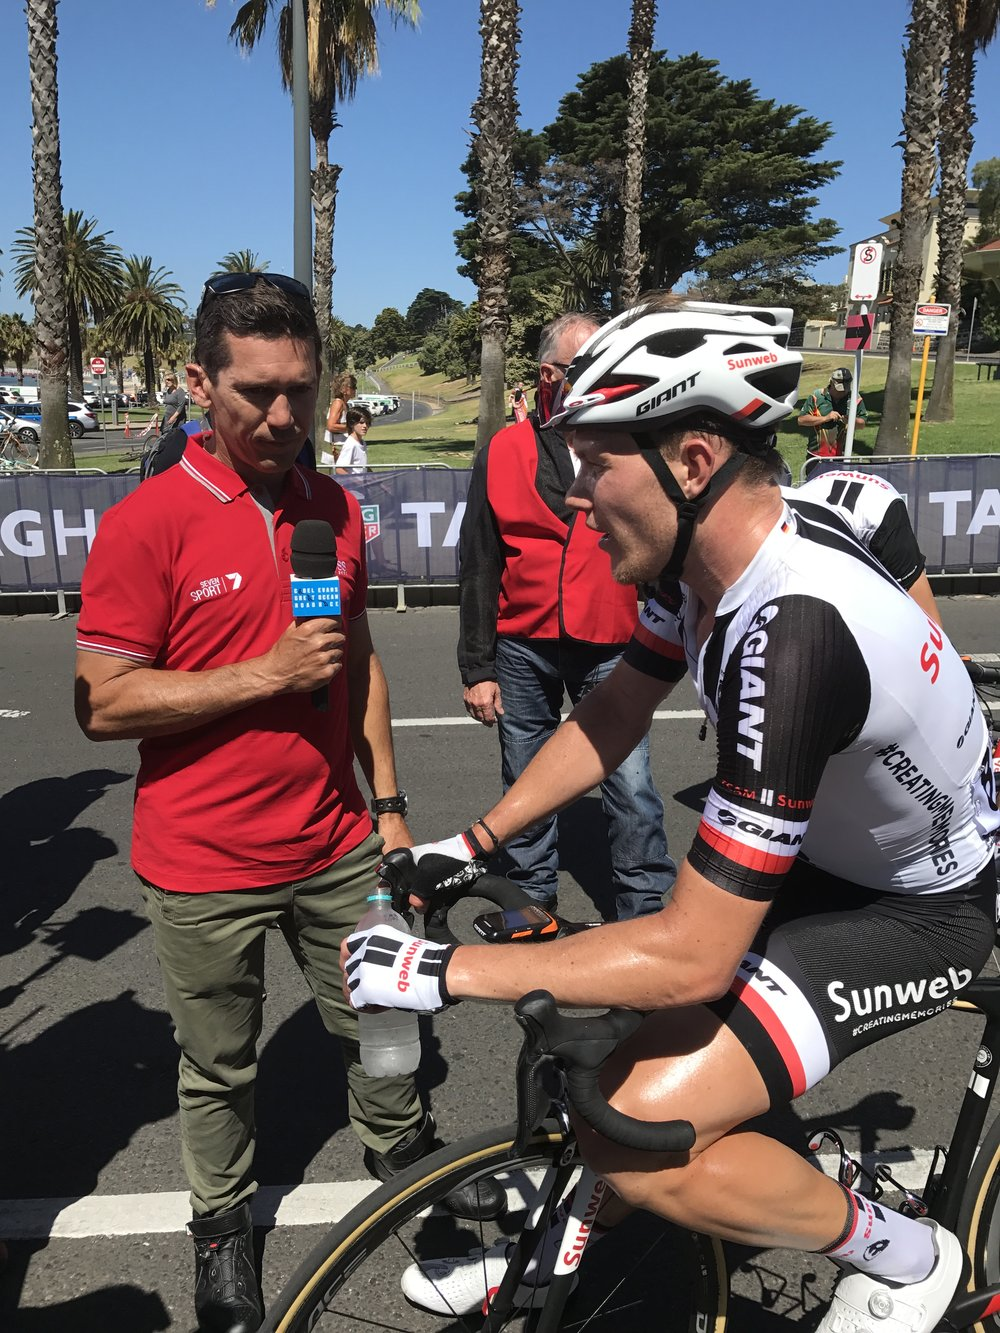 Cadel Evans 2017 - Robbie McEwen interviews the winner Nikias Arndt